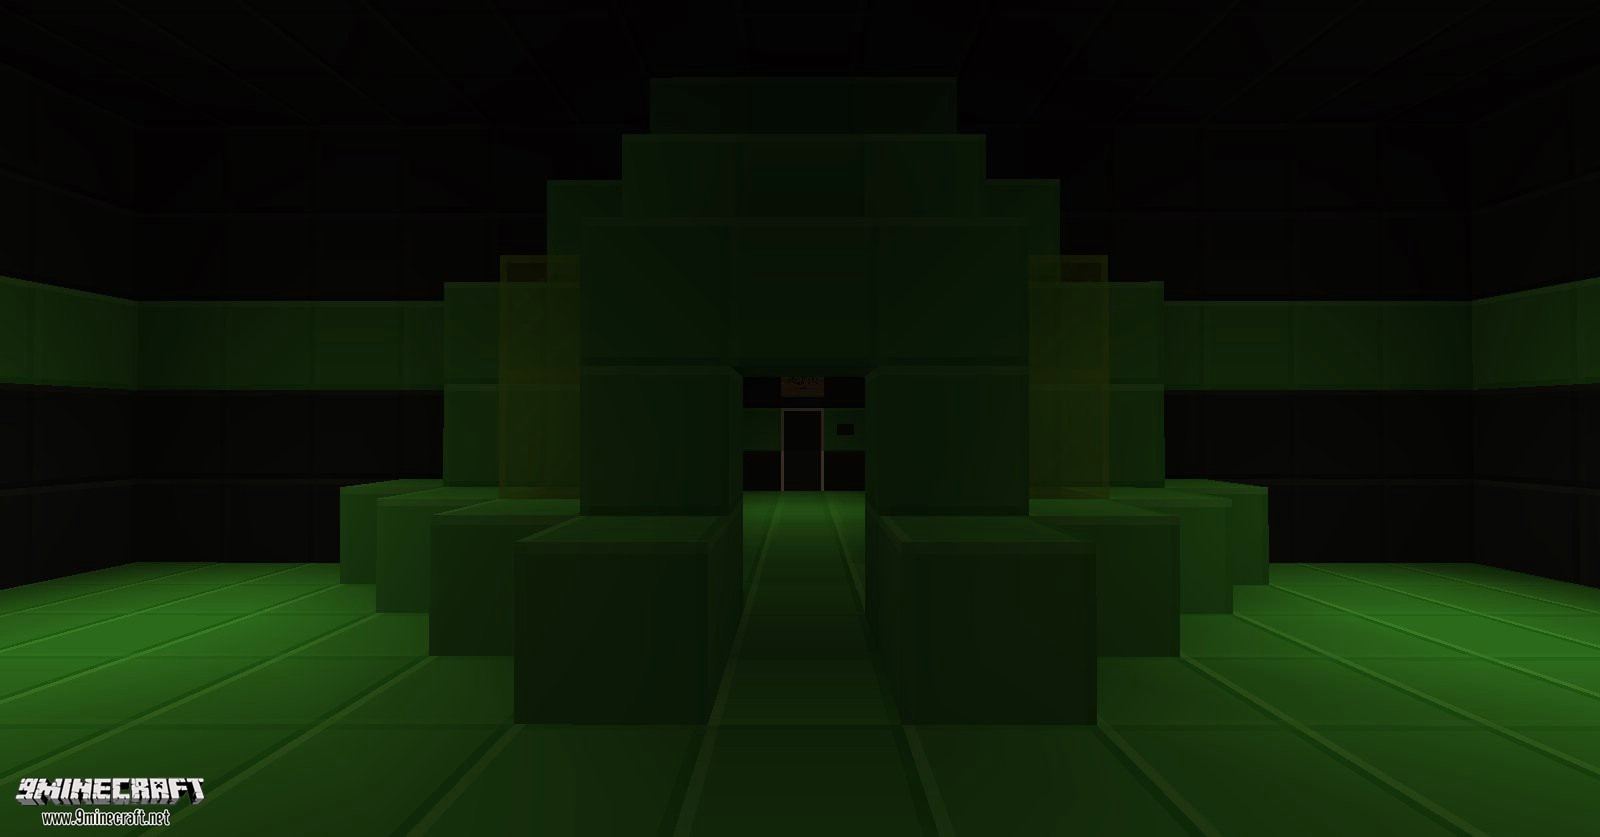 Laser-tag-capture-the-blocks-map-2.jpg